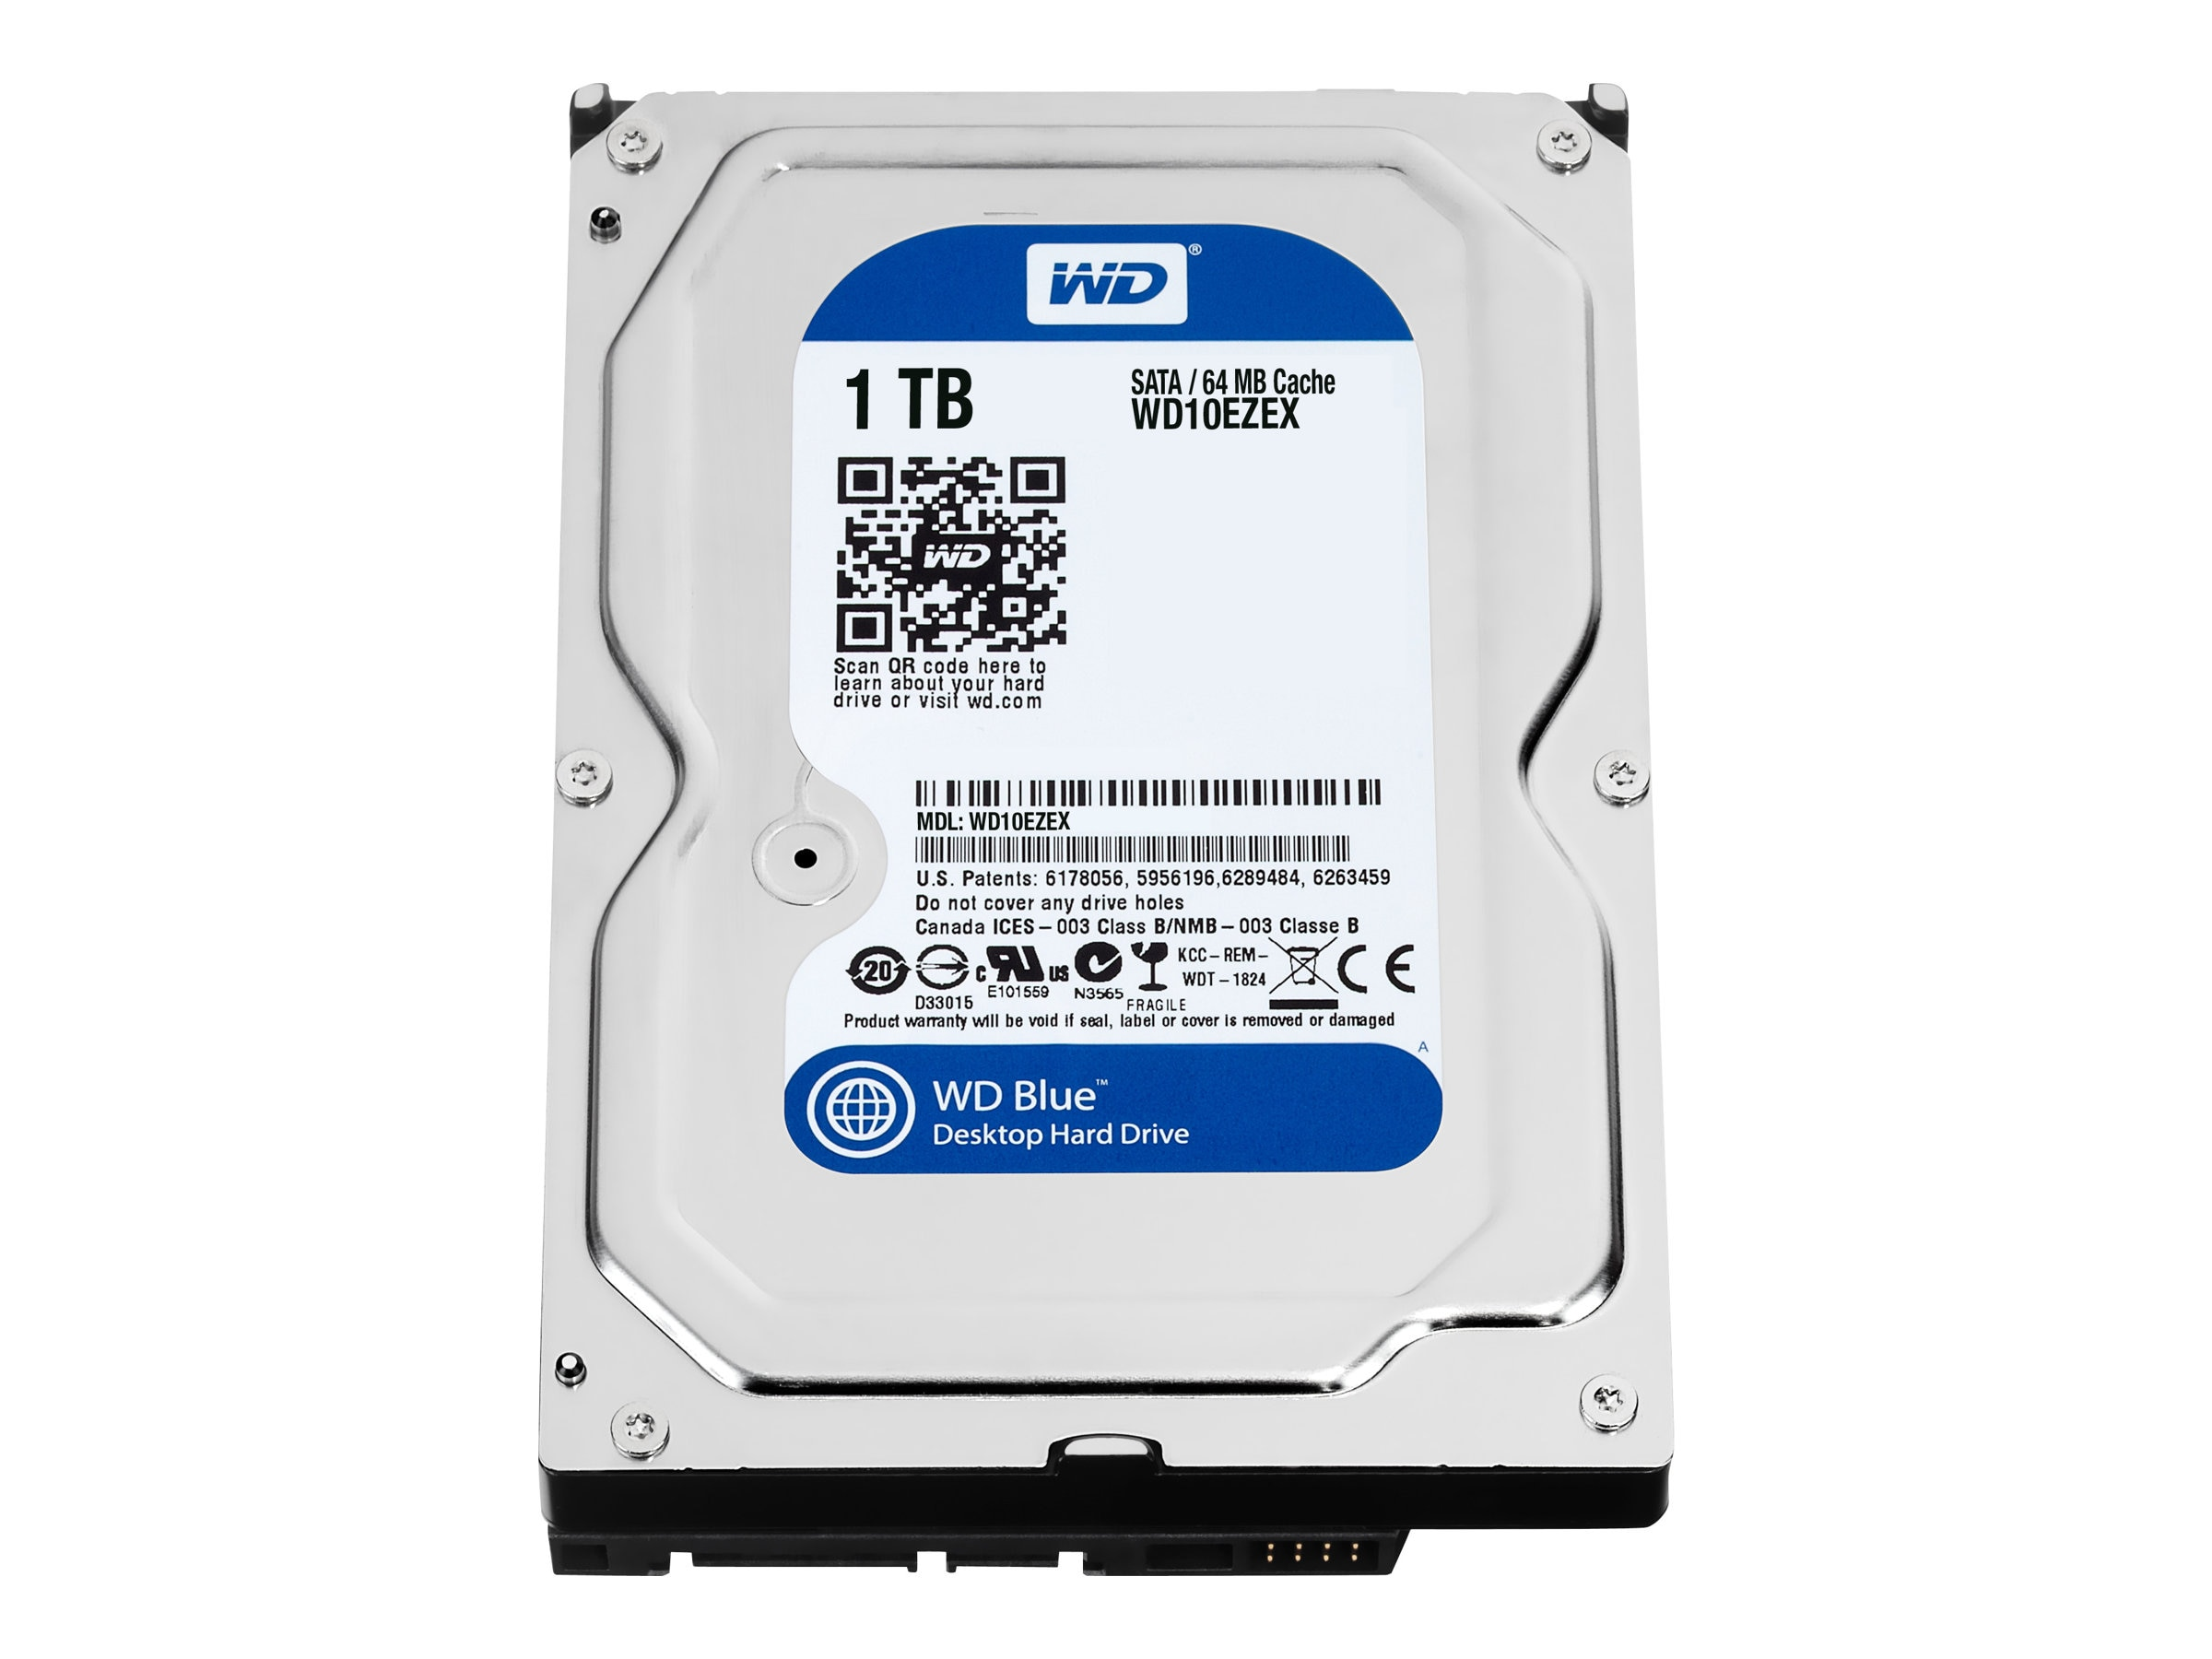 WD 1TB WD Caviar Blue SATA 6Gb s 3.5 Internal Hard Drive - 64MB Cache, WD10EZEX, 14292286, Hard Drives - Internal